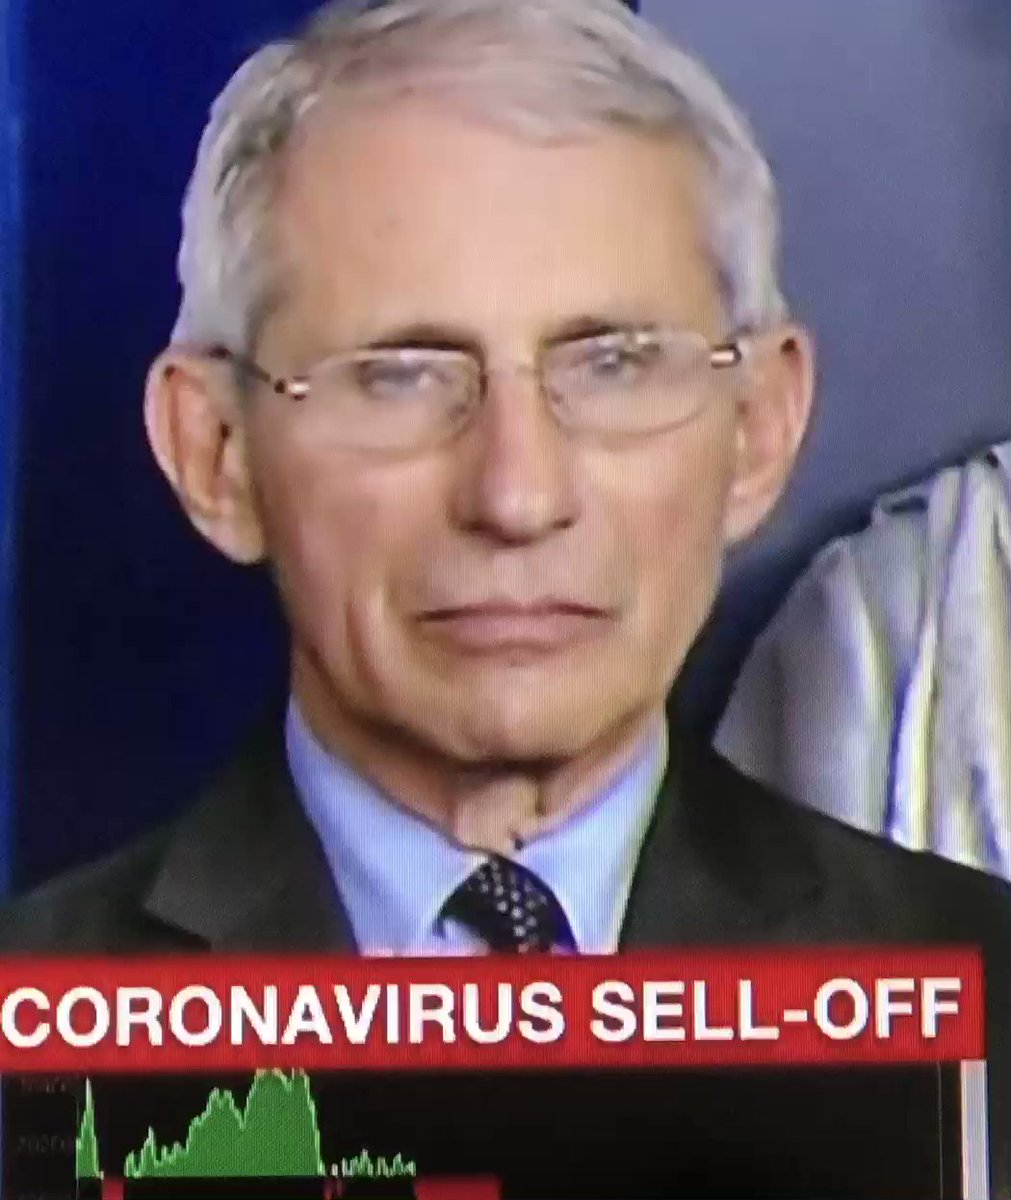 You can almost see Dr. Fauci's soul leave his body